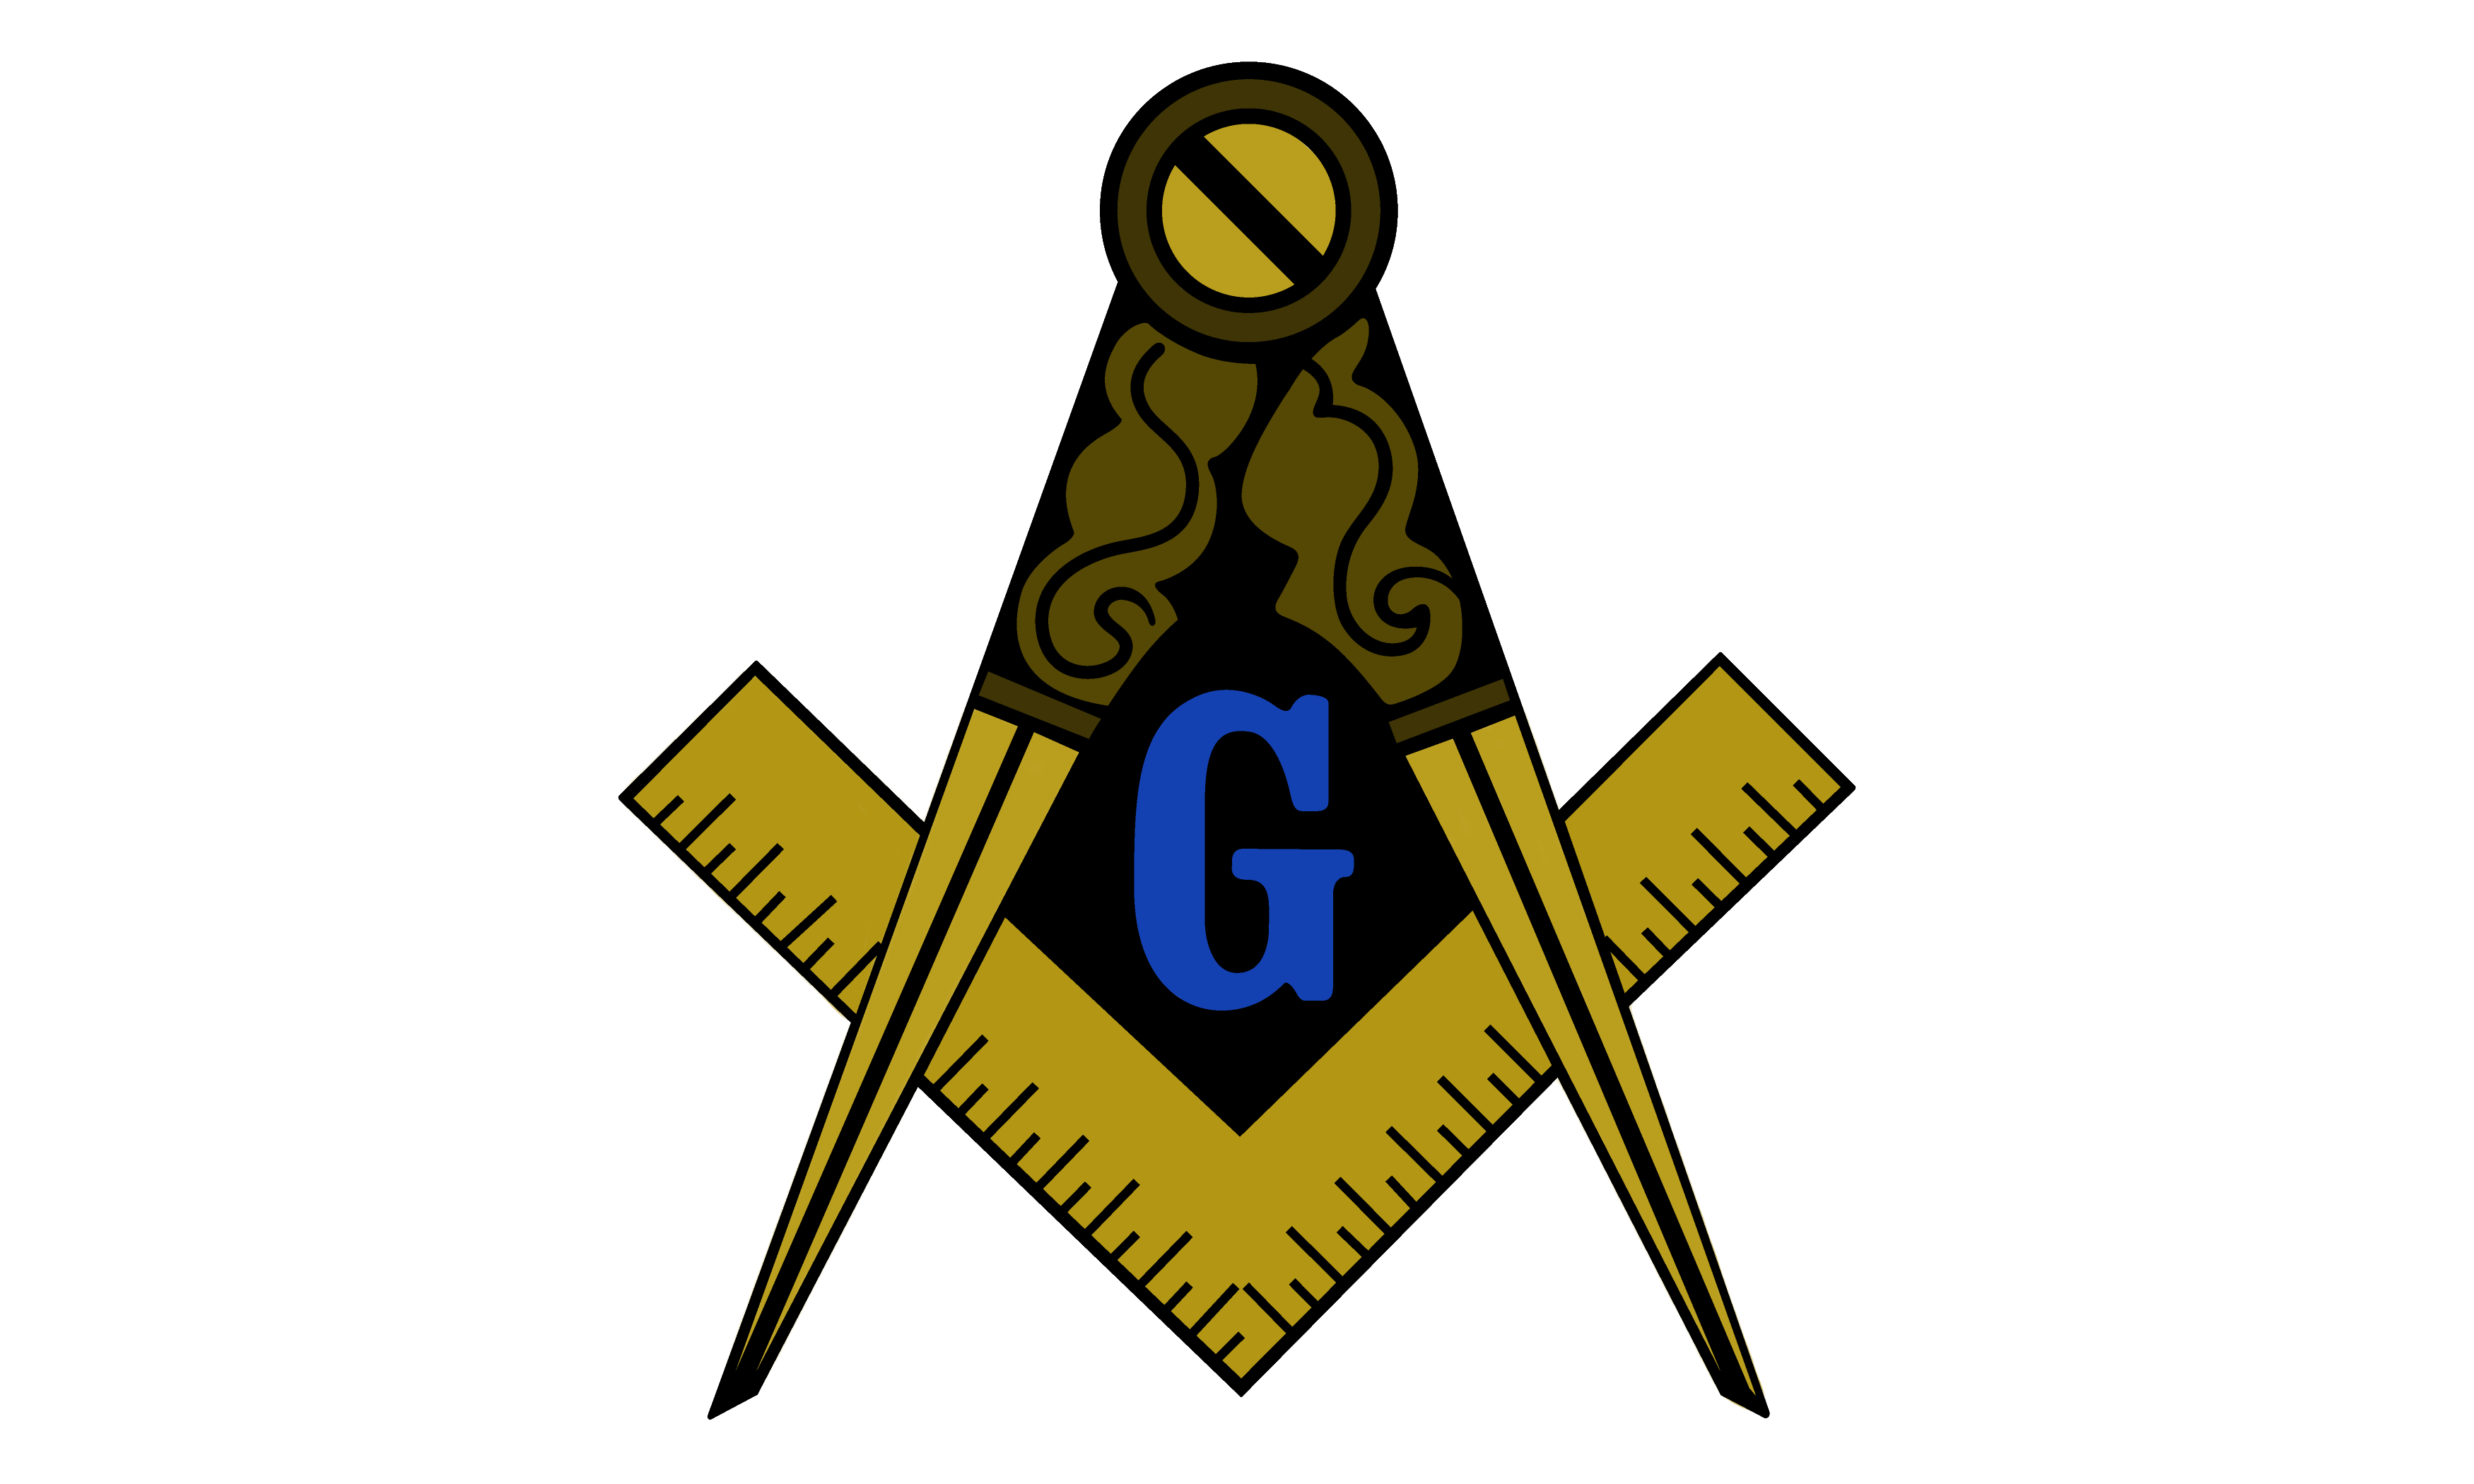 Masonic lodge logo clipart images gallery for free download.